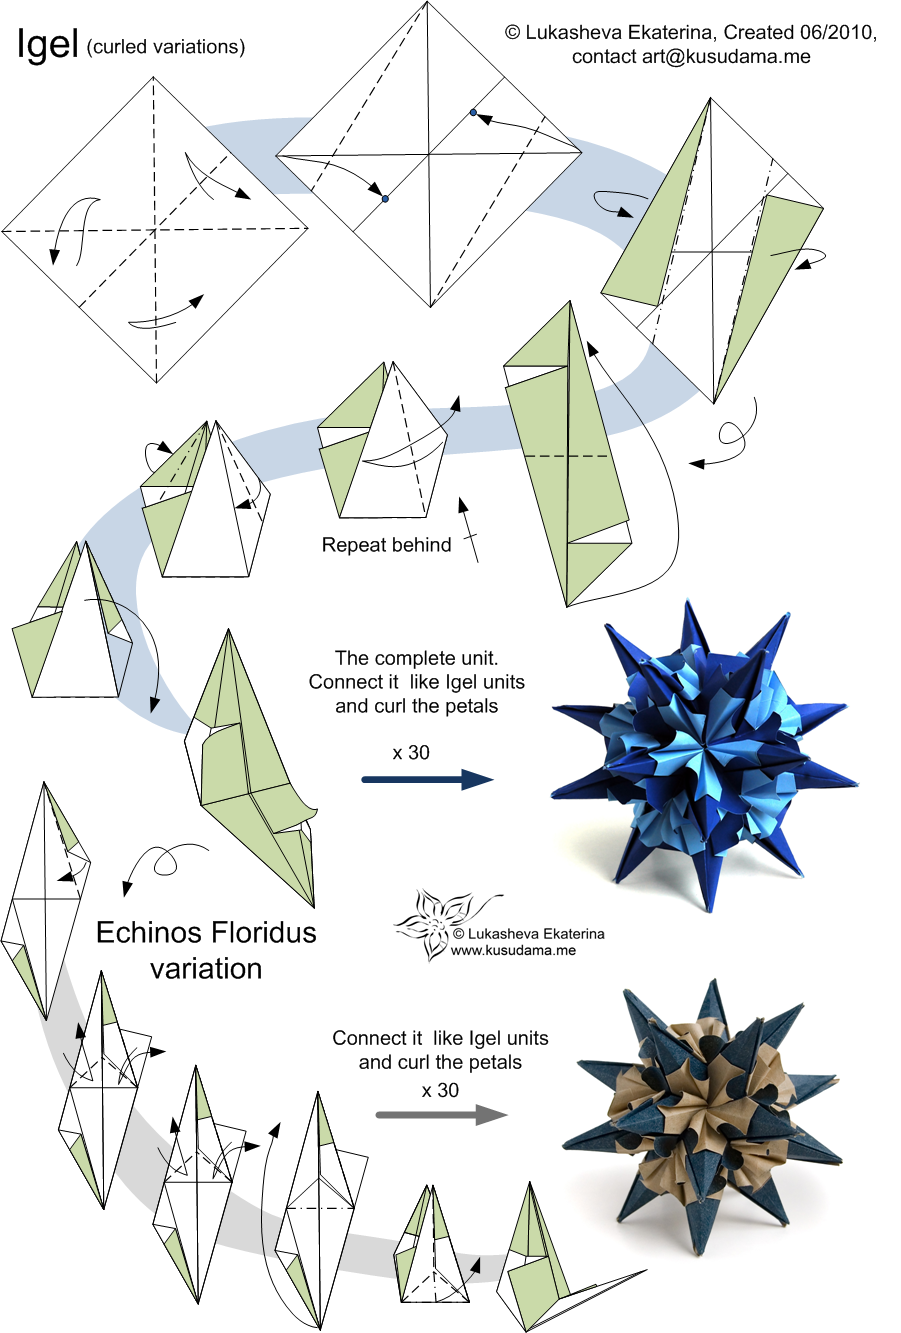 cool modular origami diagram molecular orbital energy for n2 kusudama me variaton of spikes unit the lose peper is curled and creates illusion flowers